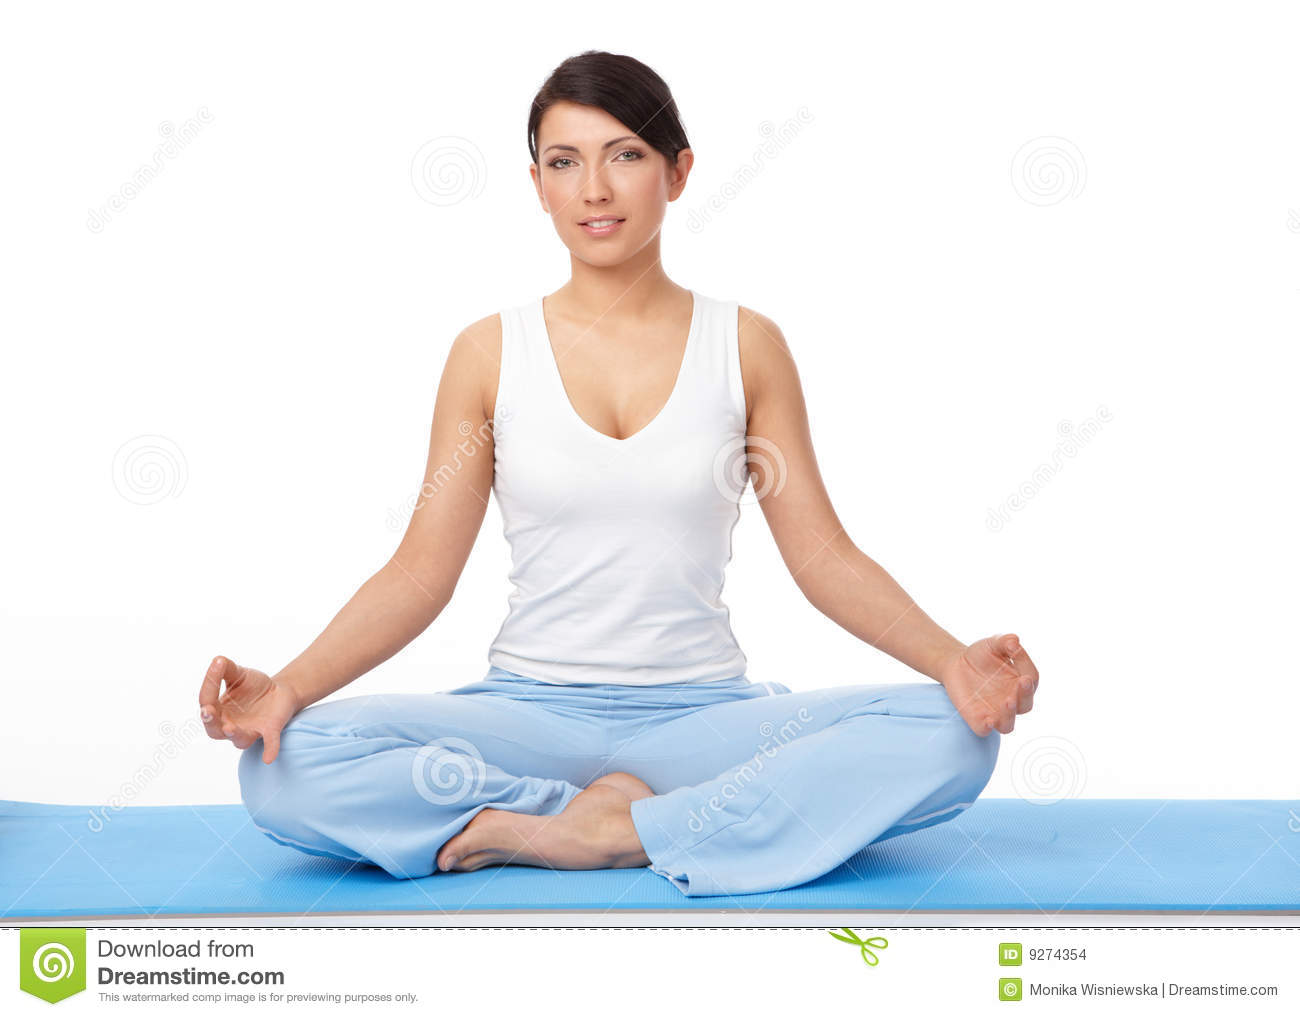 8 tips on how to do yoga at home - Practice and all is coming